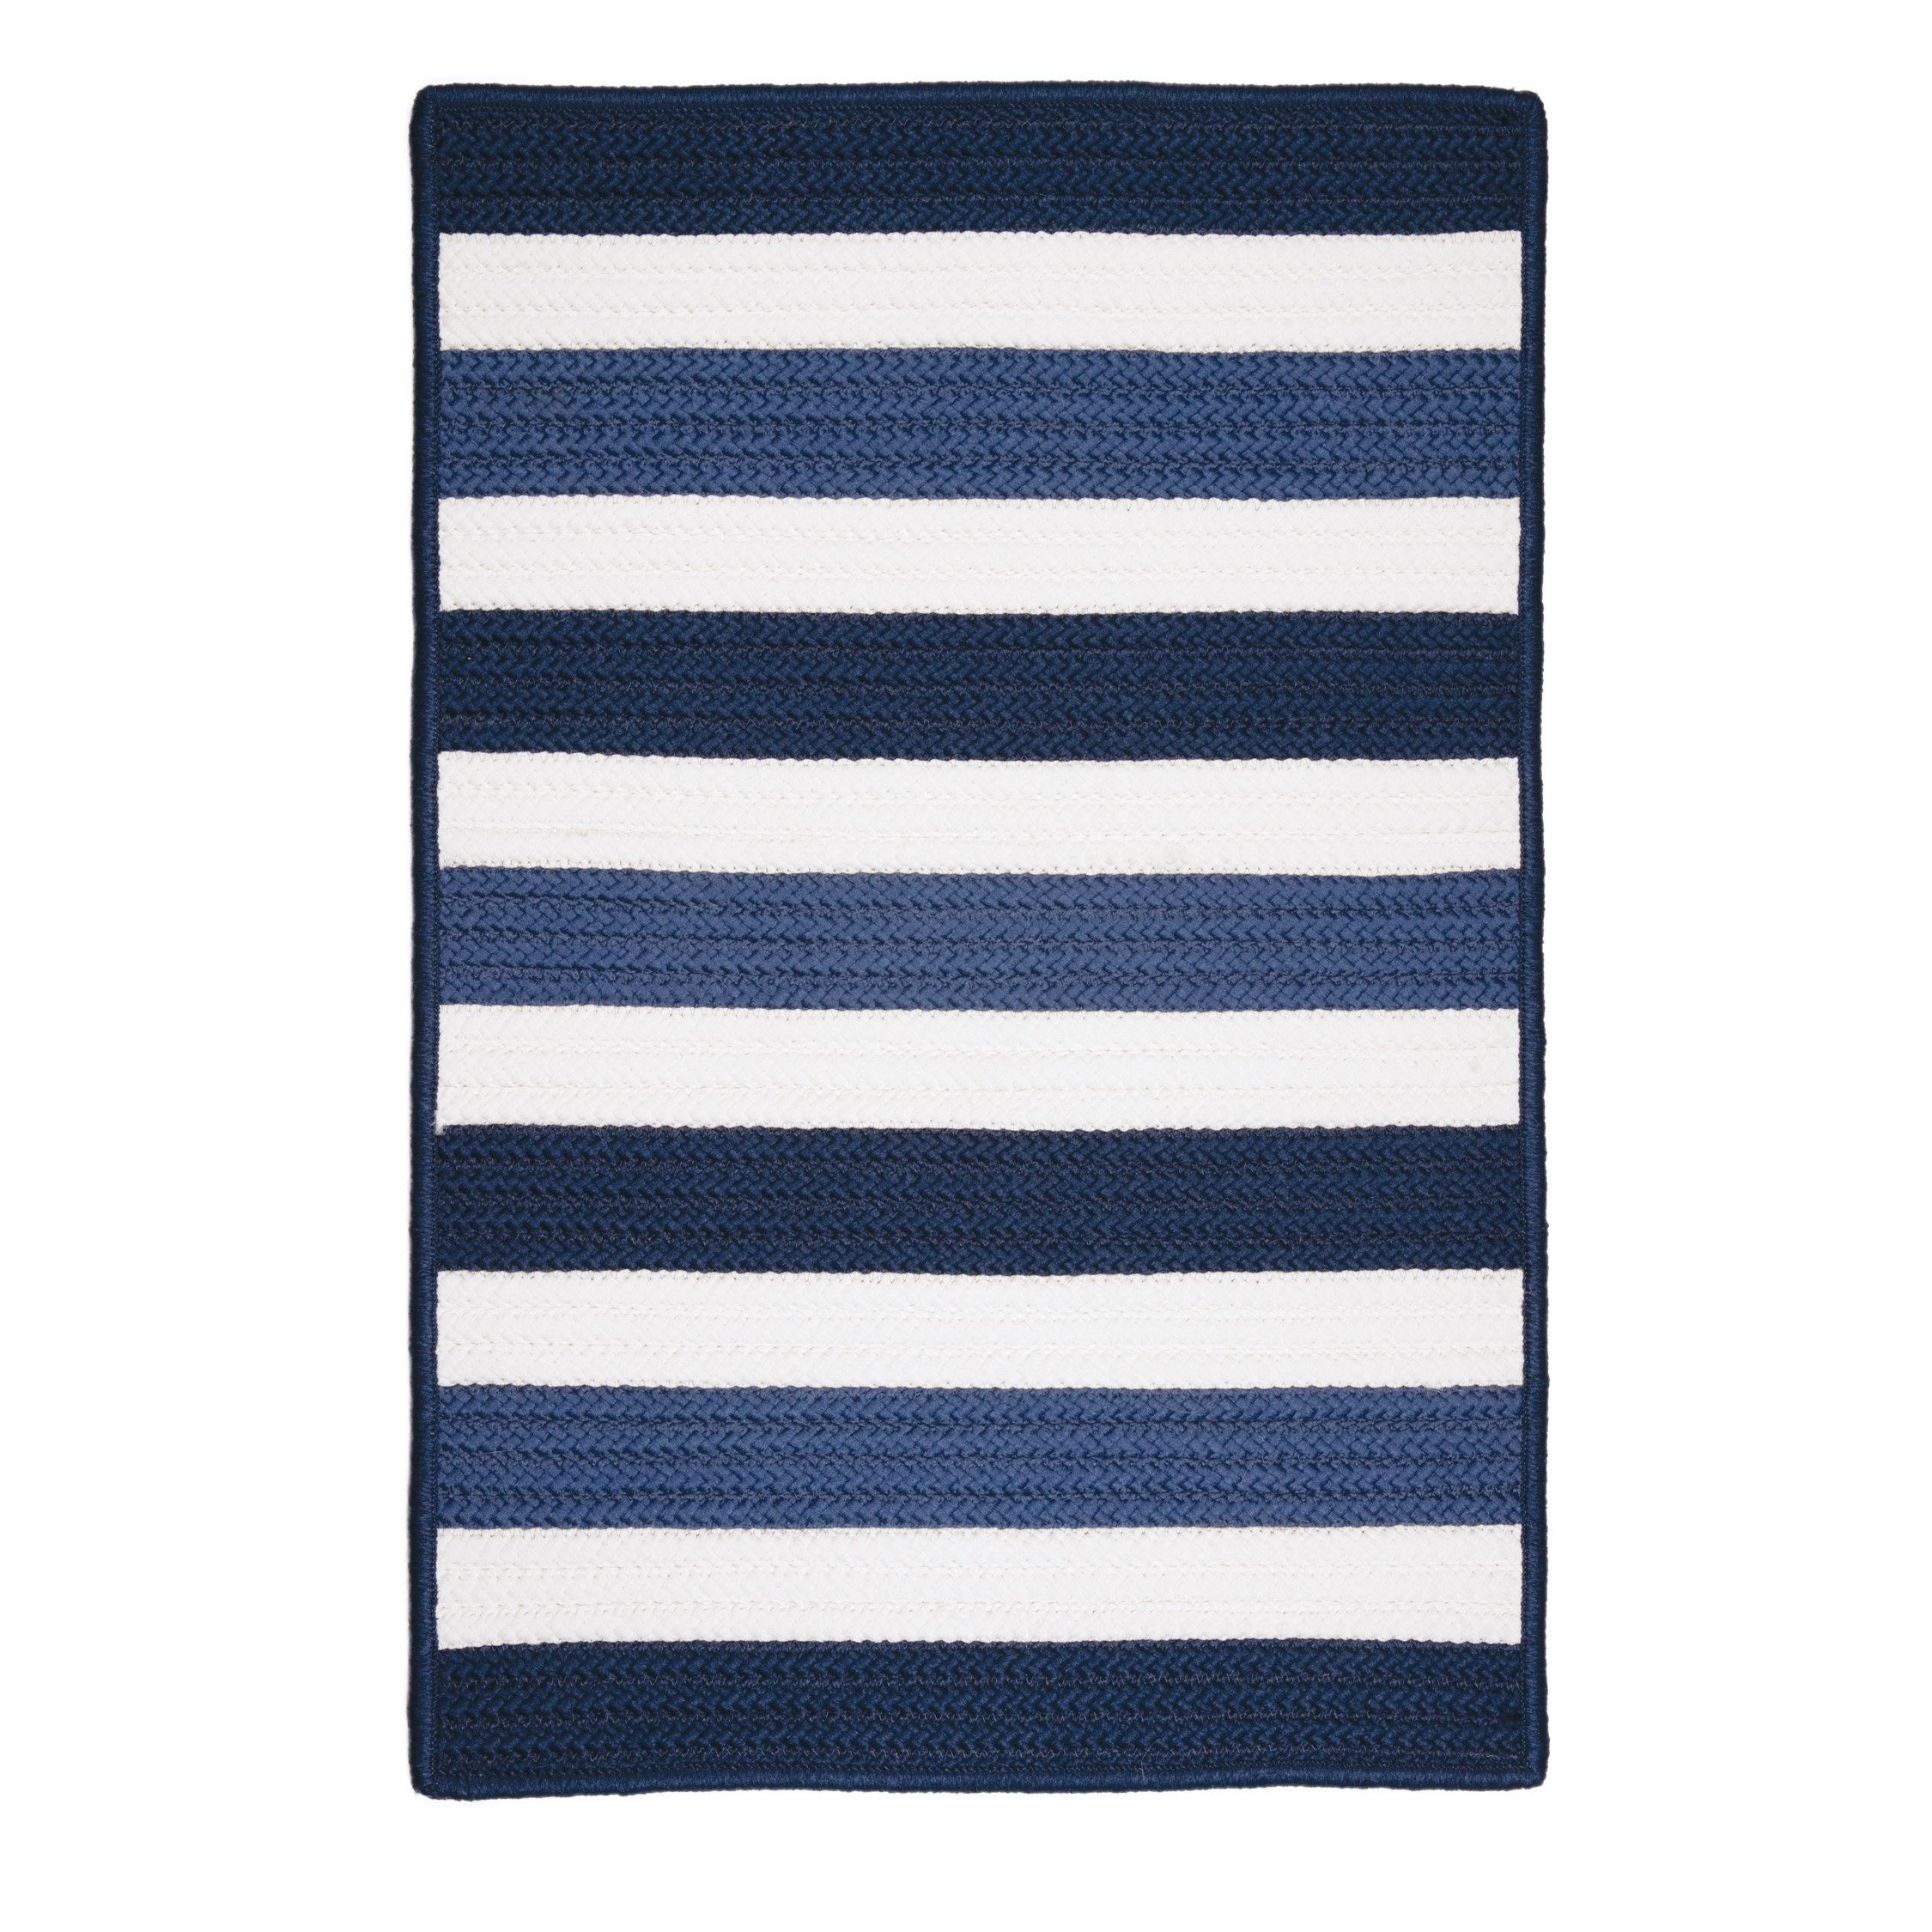 You Ll Love The Andover Nautical Indoor Outdoor Area Rug At Wayfair Great